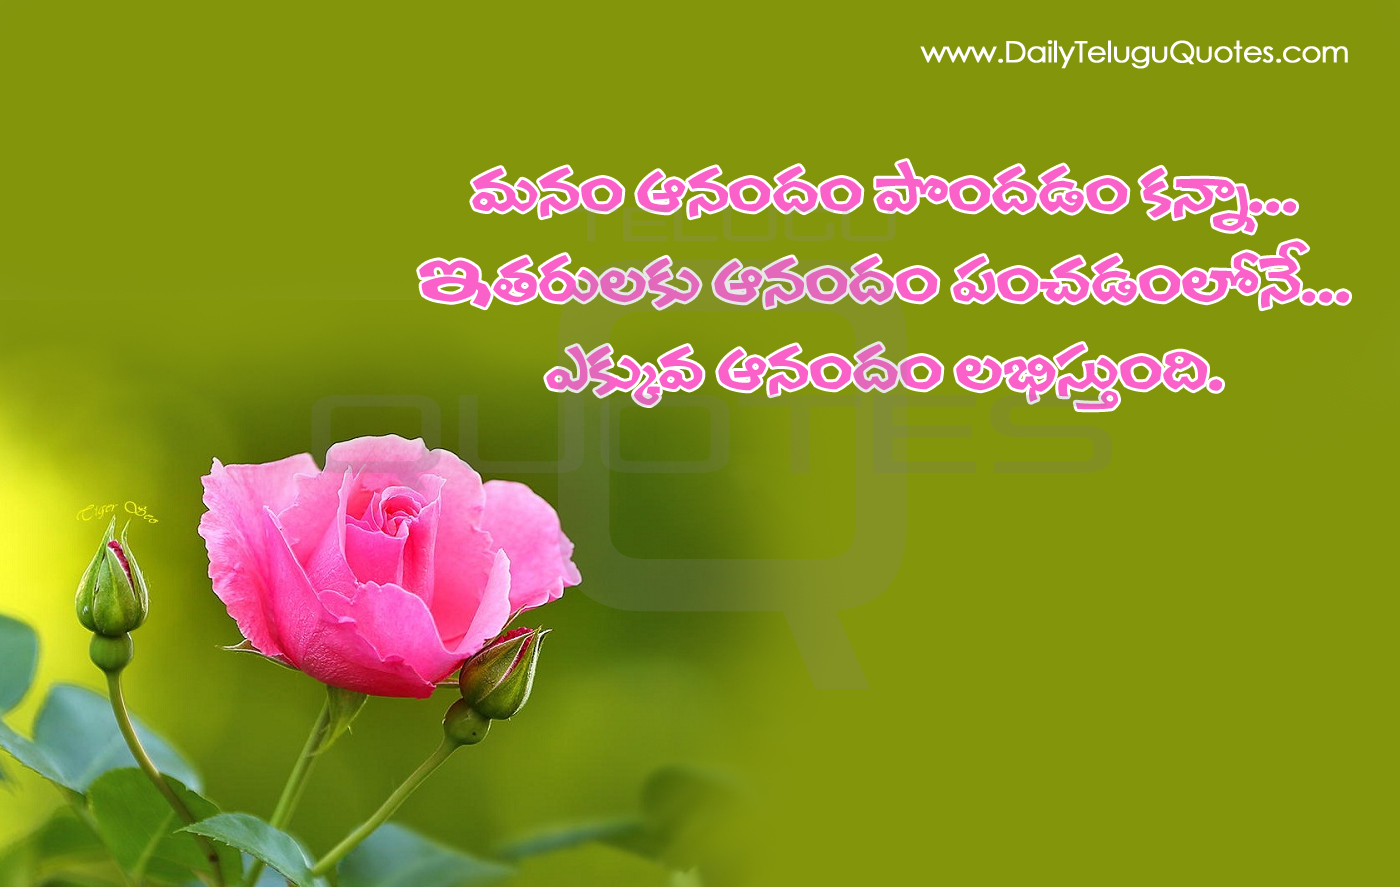 Motivational Messages Best Life Quotations And Motivational Thoughts In Telugu With Nice